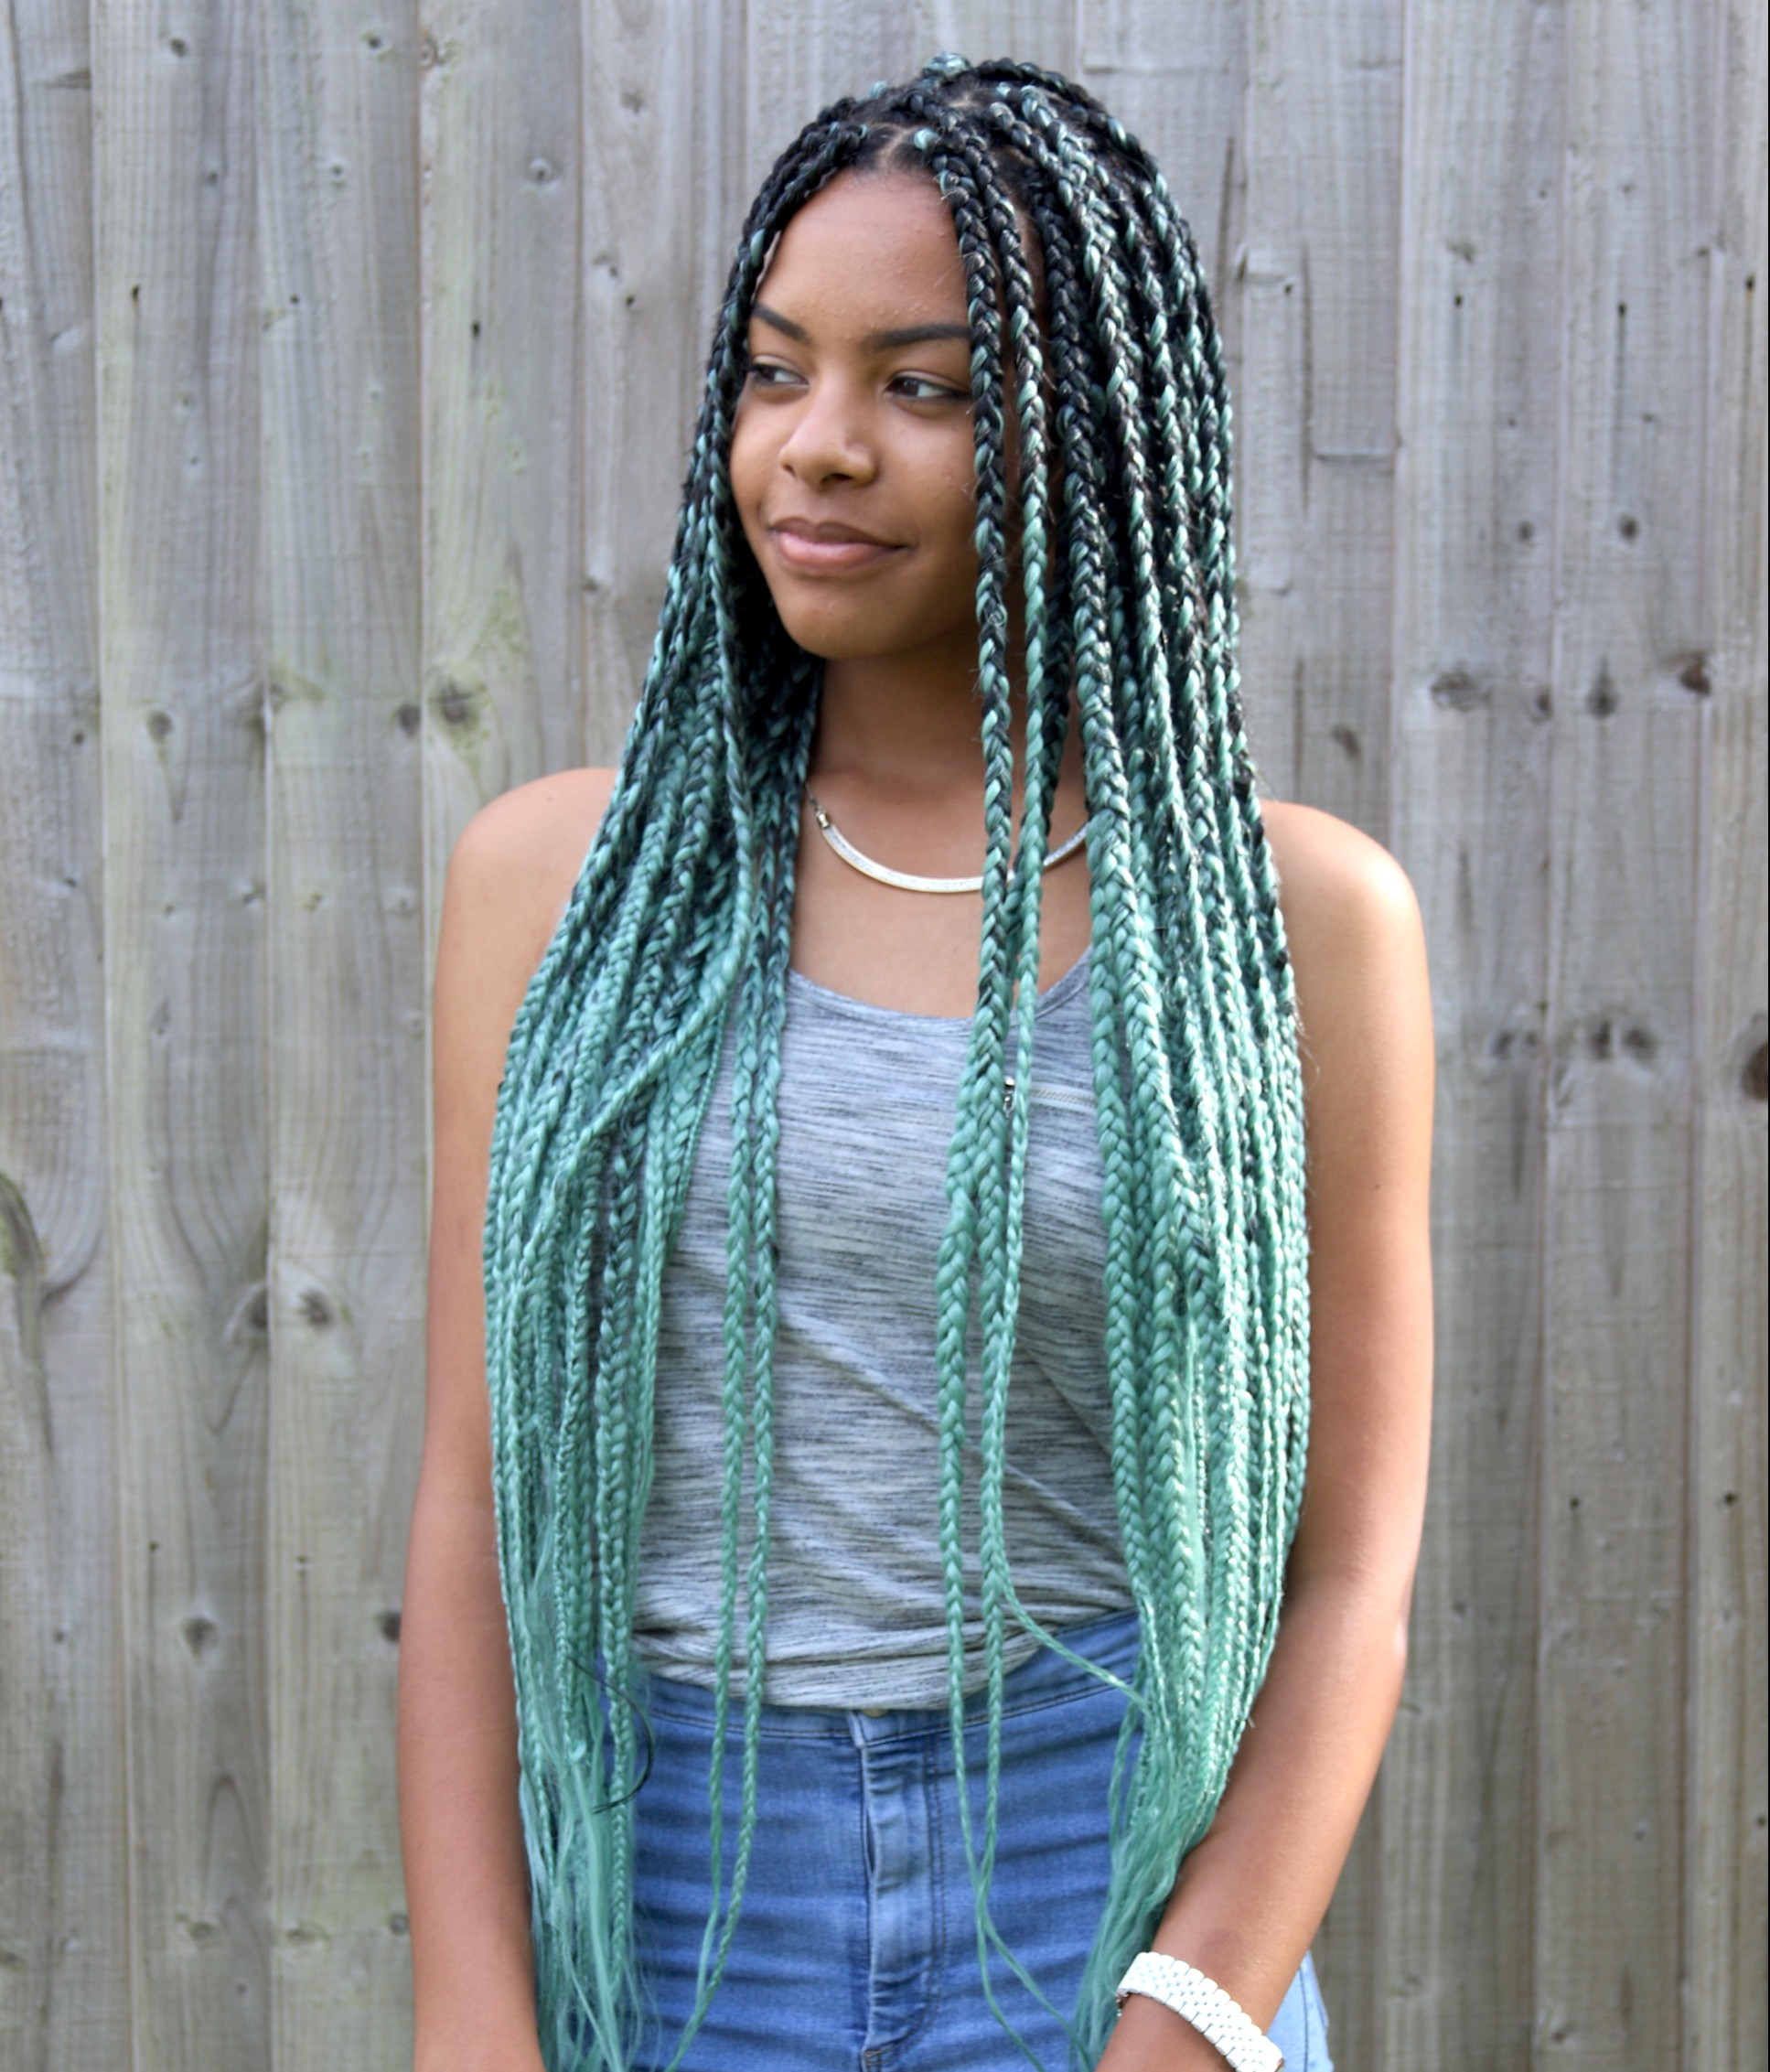 Crochet Box Braids Tumblr : Crochet Braids Tumblr hnczcyw.com